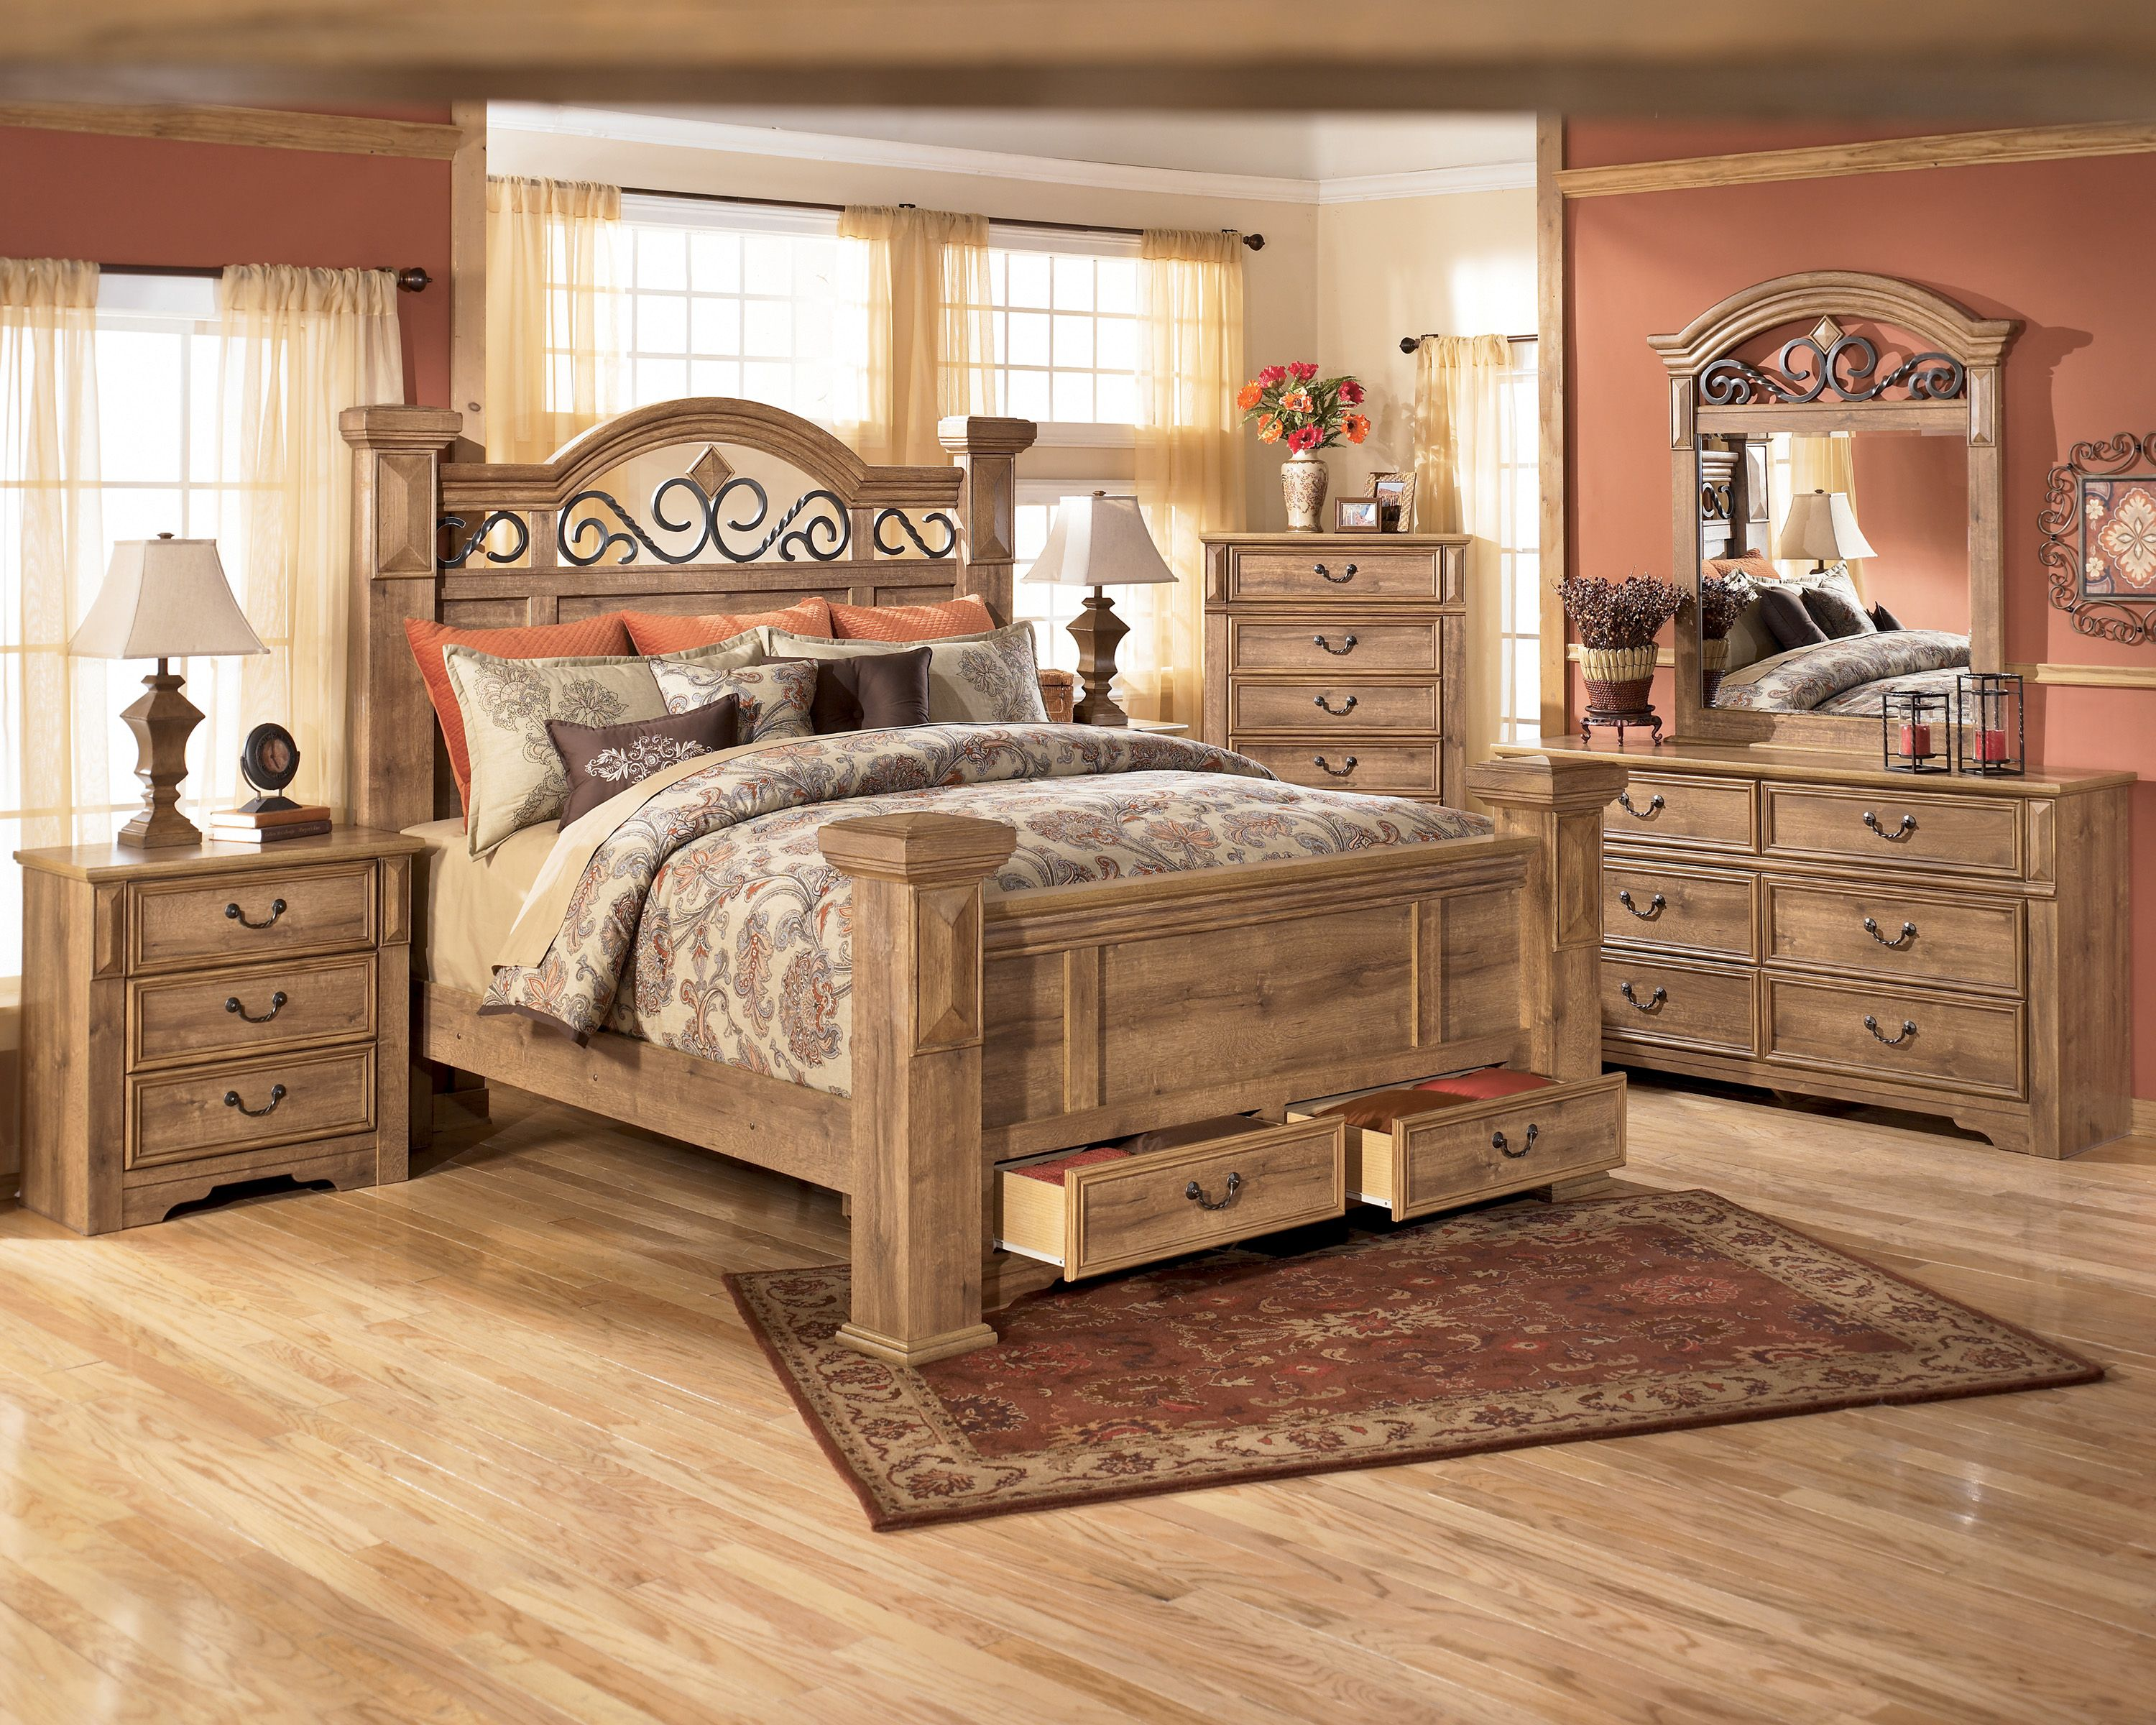 signature design by ashley whimbrel forge poster bed bedroom set home furniture showroom